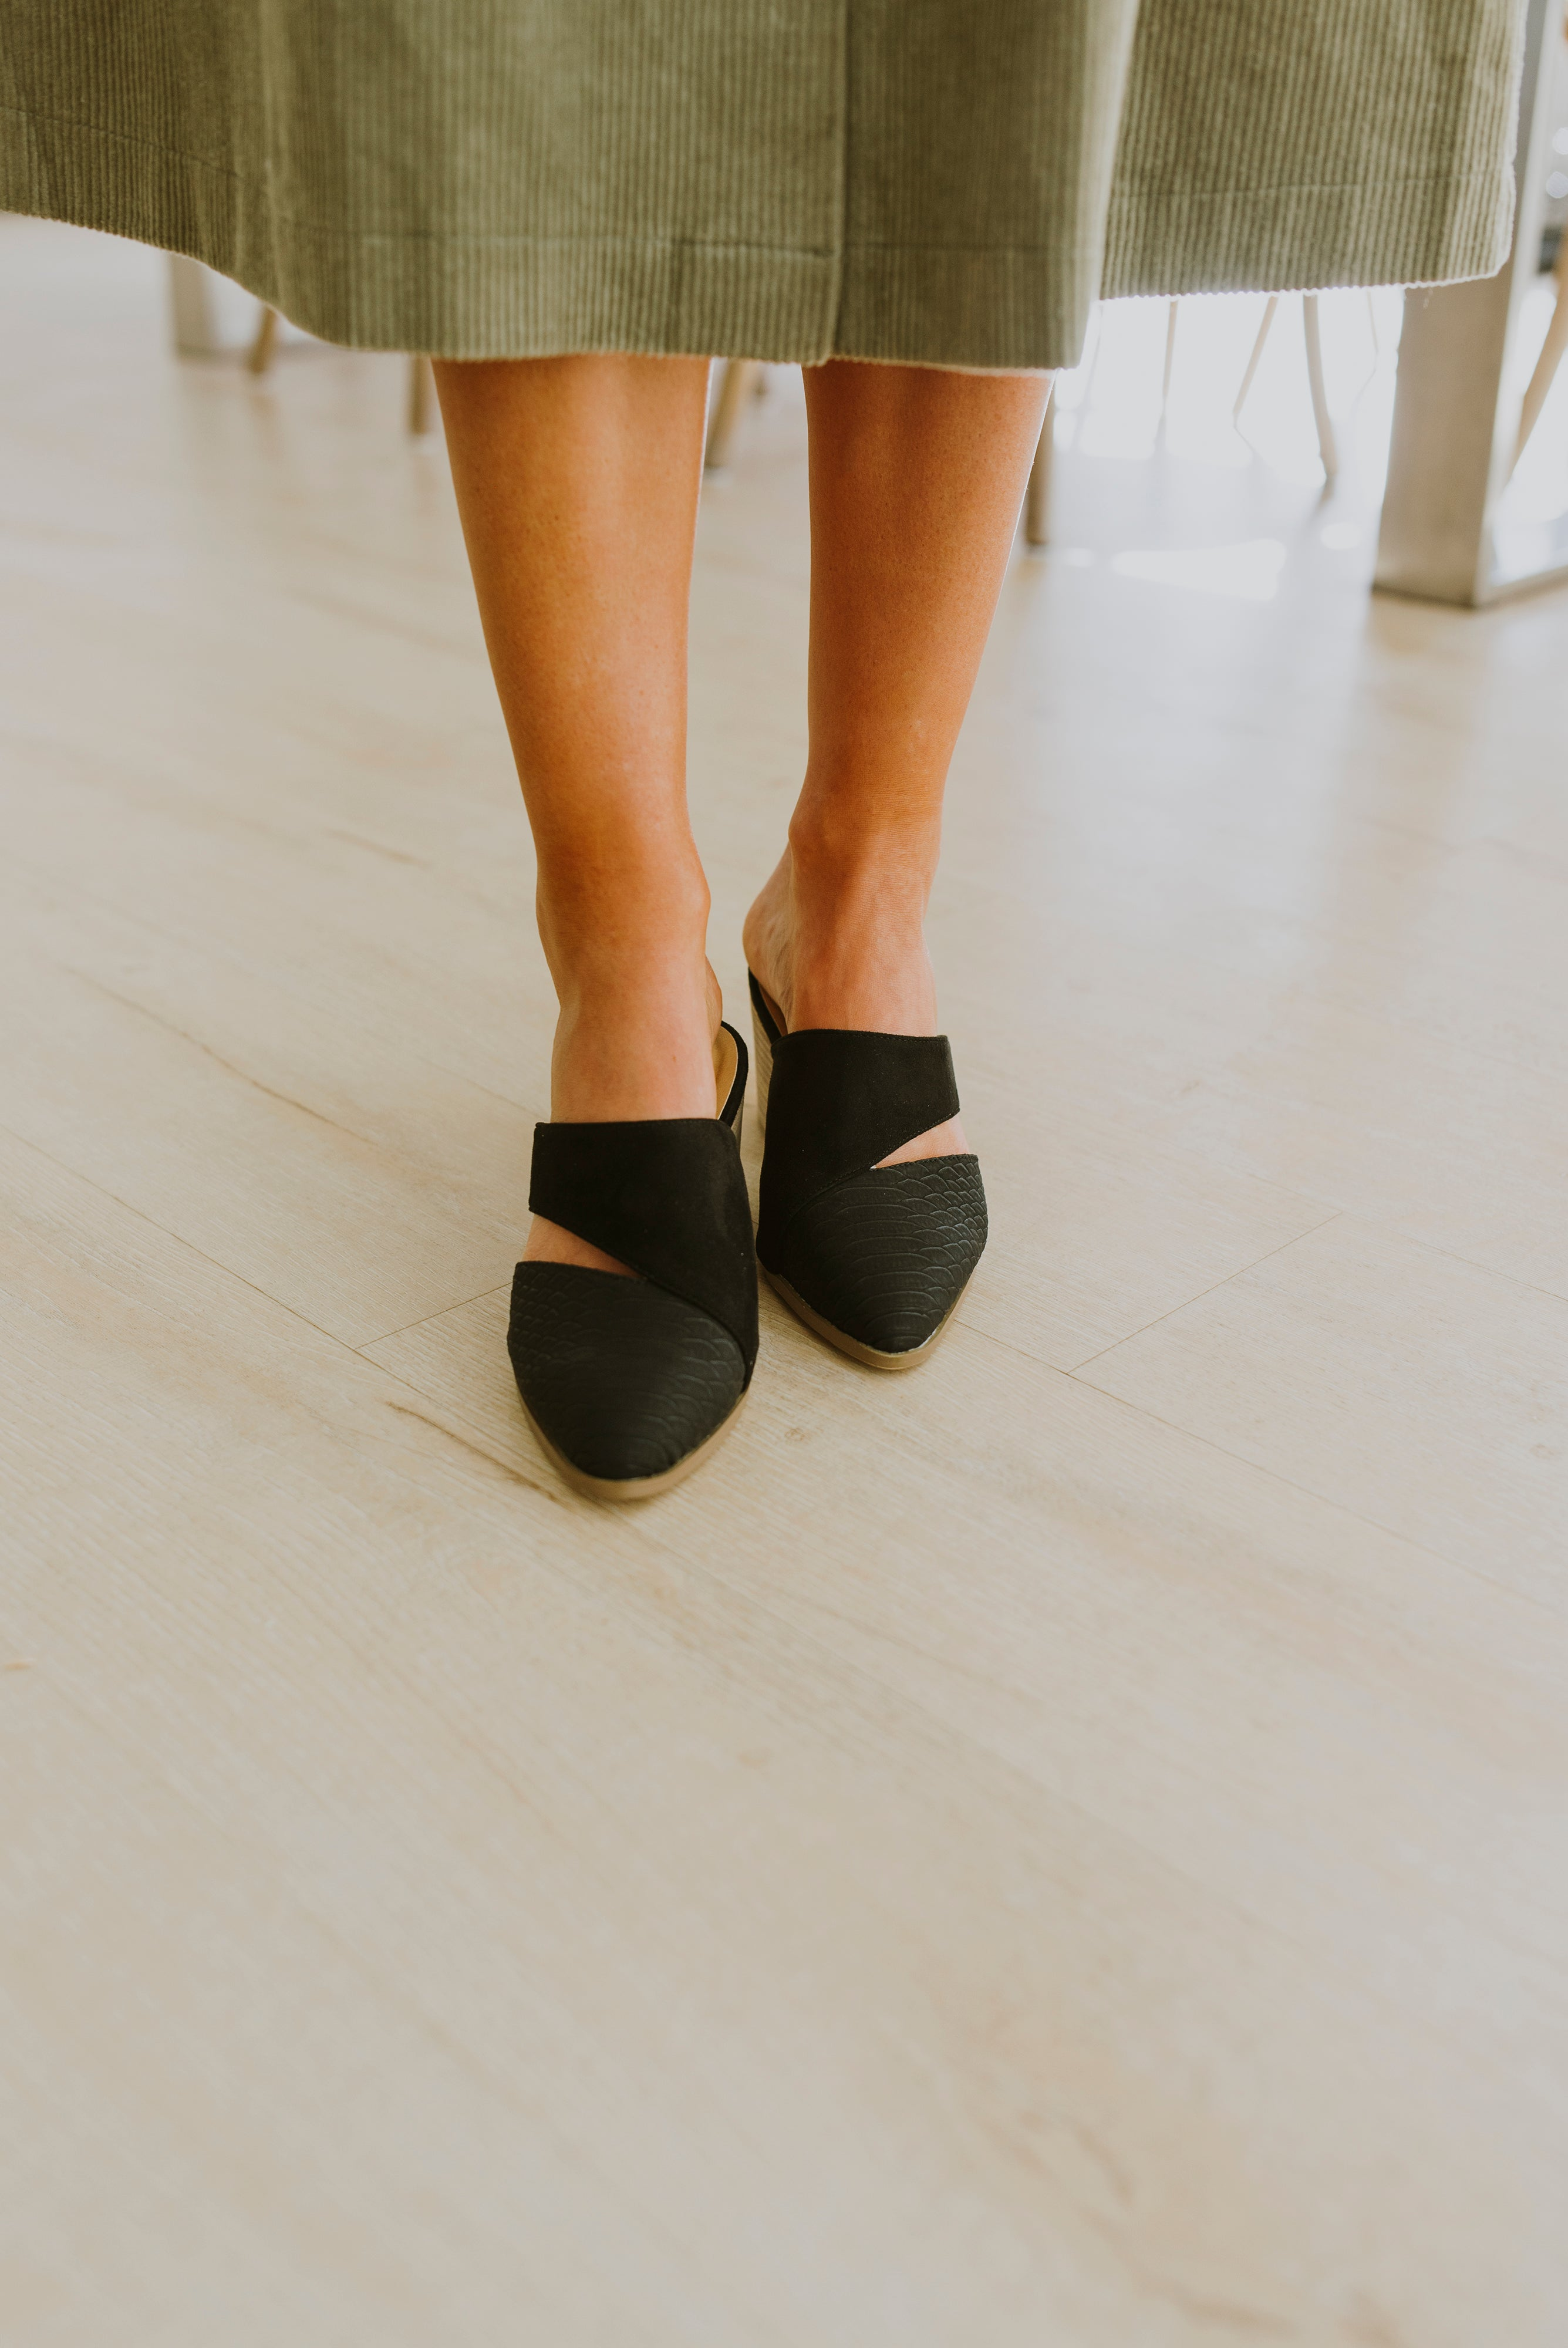 shoes, slides, cute shoes, summer shoes, outfit ideas, outfits, gift ideas, slides, black mules outfit, spring outfits, summer work outfits, mules shoes, slides outfit, trendy shoes, spring outfits, business casual outfits, trendy outfits, casual outfits, teacher outfits, school outfits, teenager outfits, cute fits, cute clothes, date night outfit, brunch outfit, picnic outfit, college outfits, teen outfits, trendy outfit inspo, spring fits, trendy summer outfits